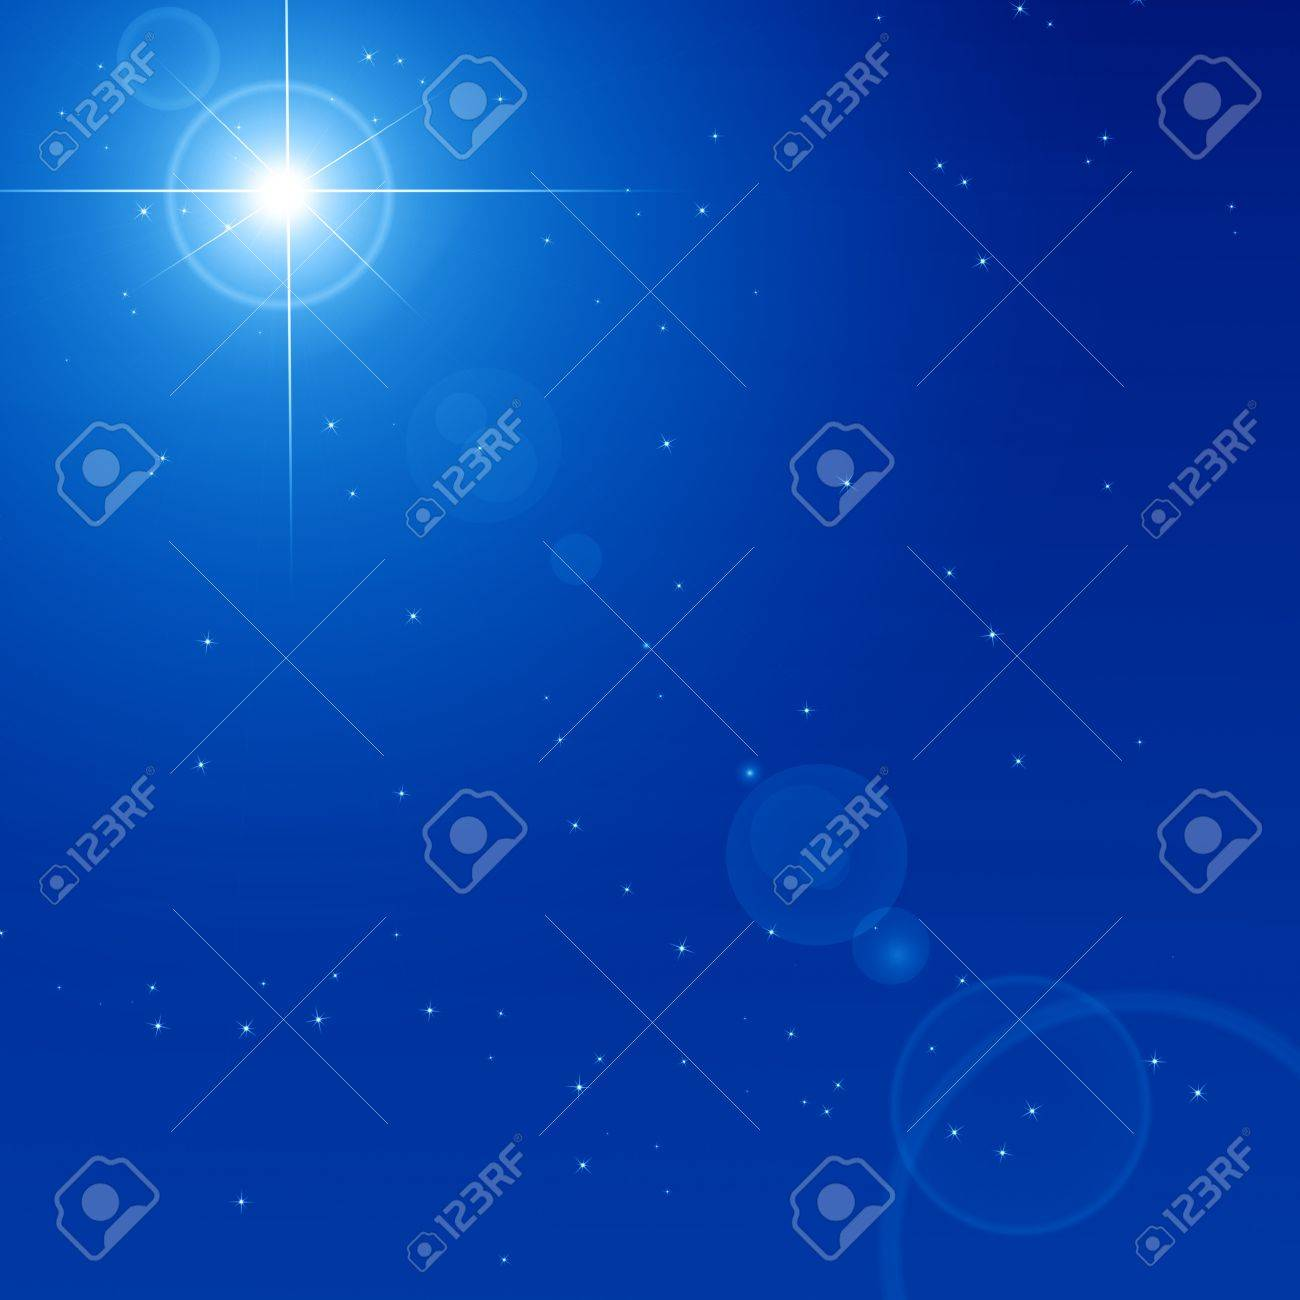 Peaceful blue sky filled with sparkling stars Stock Photo - 14840274